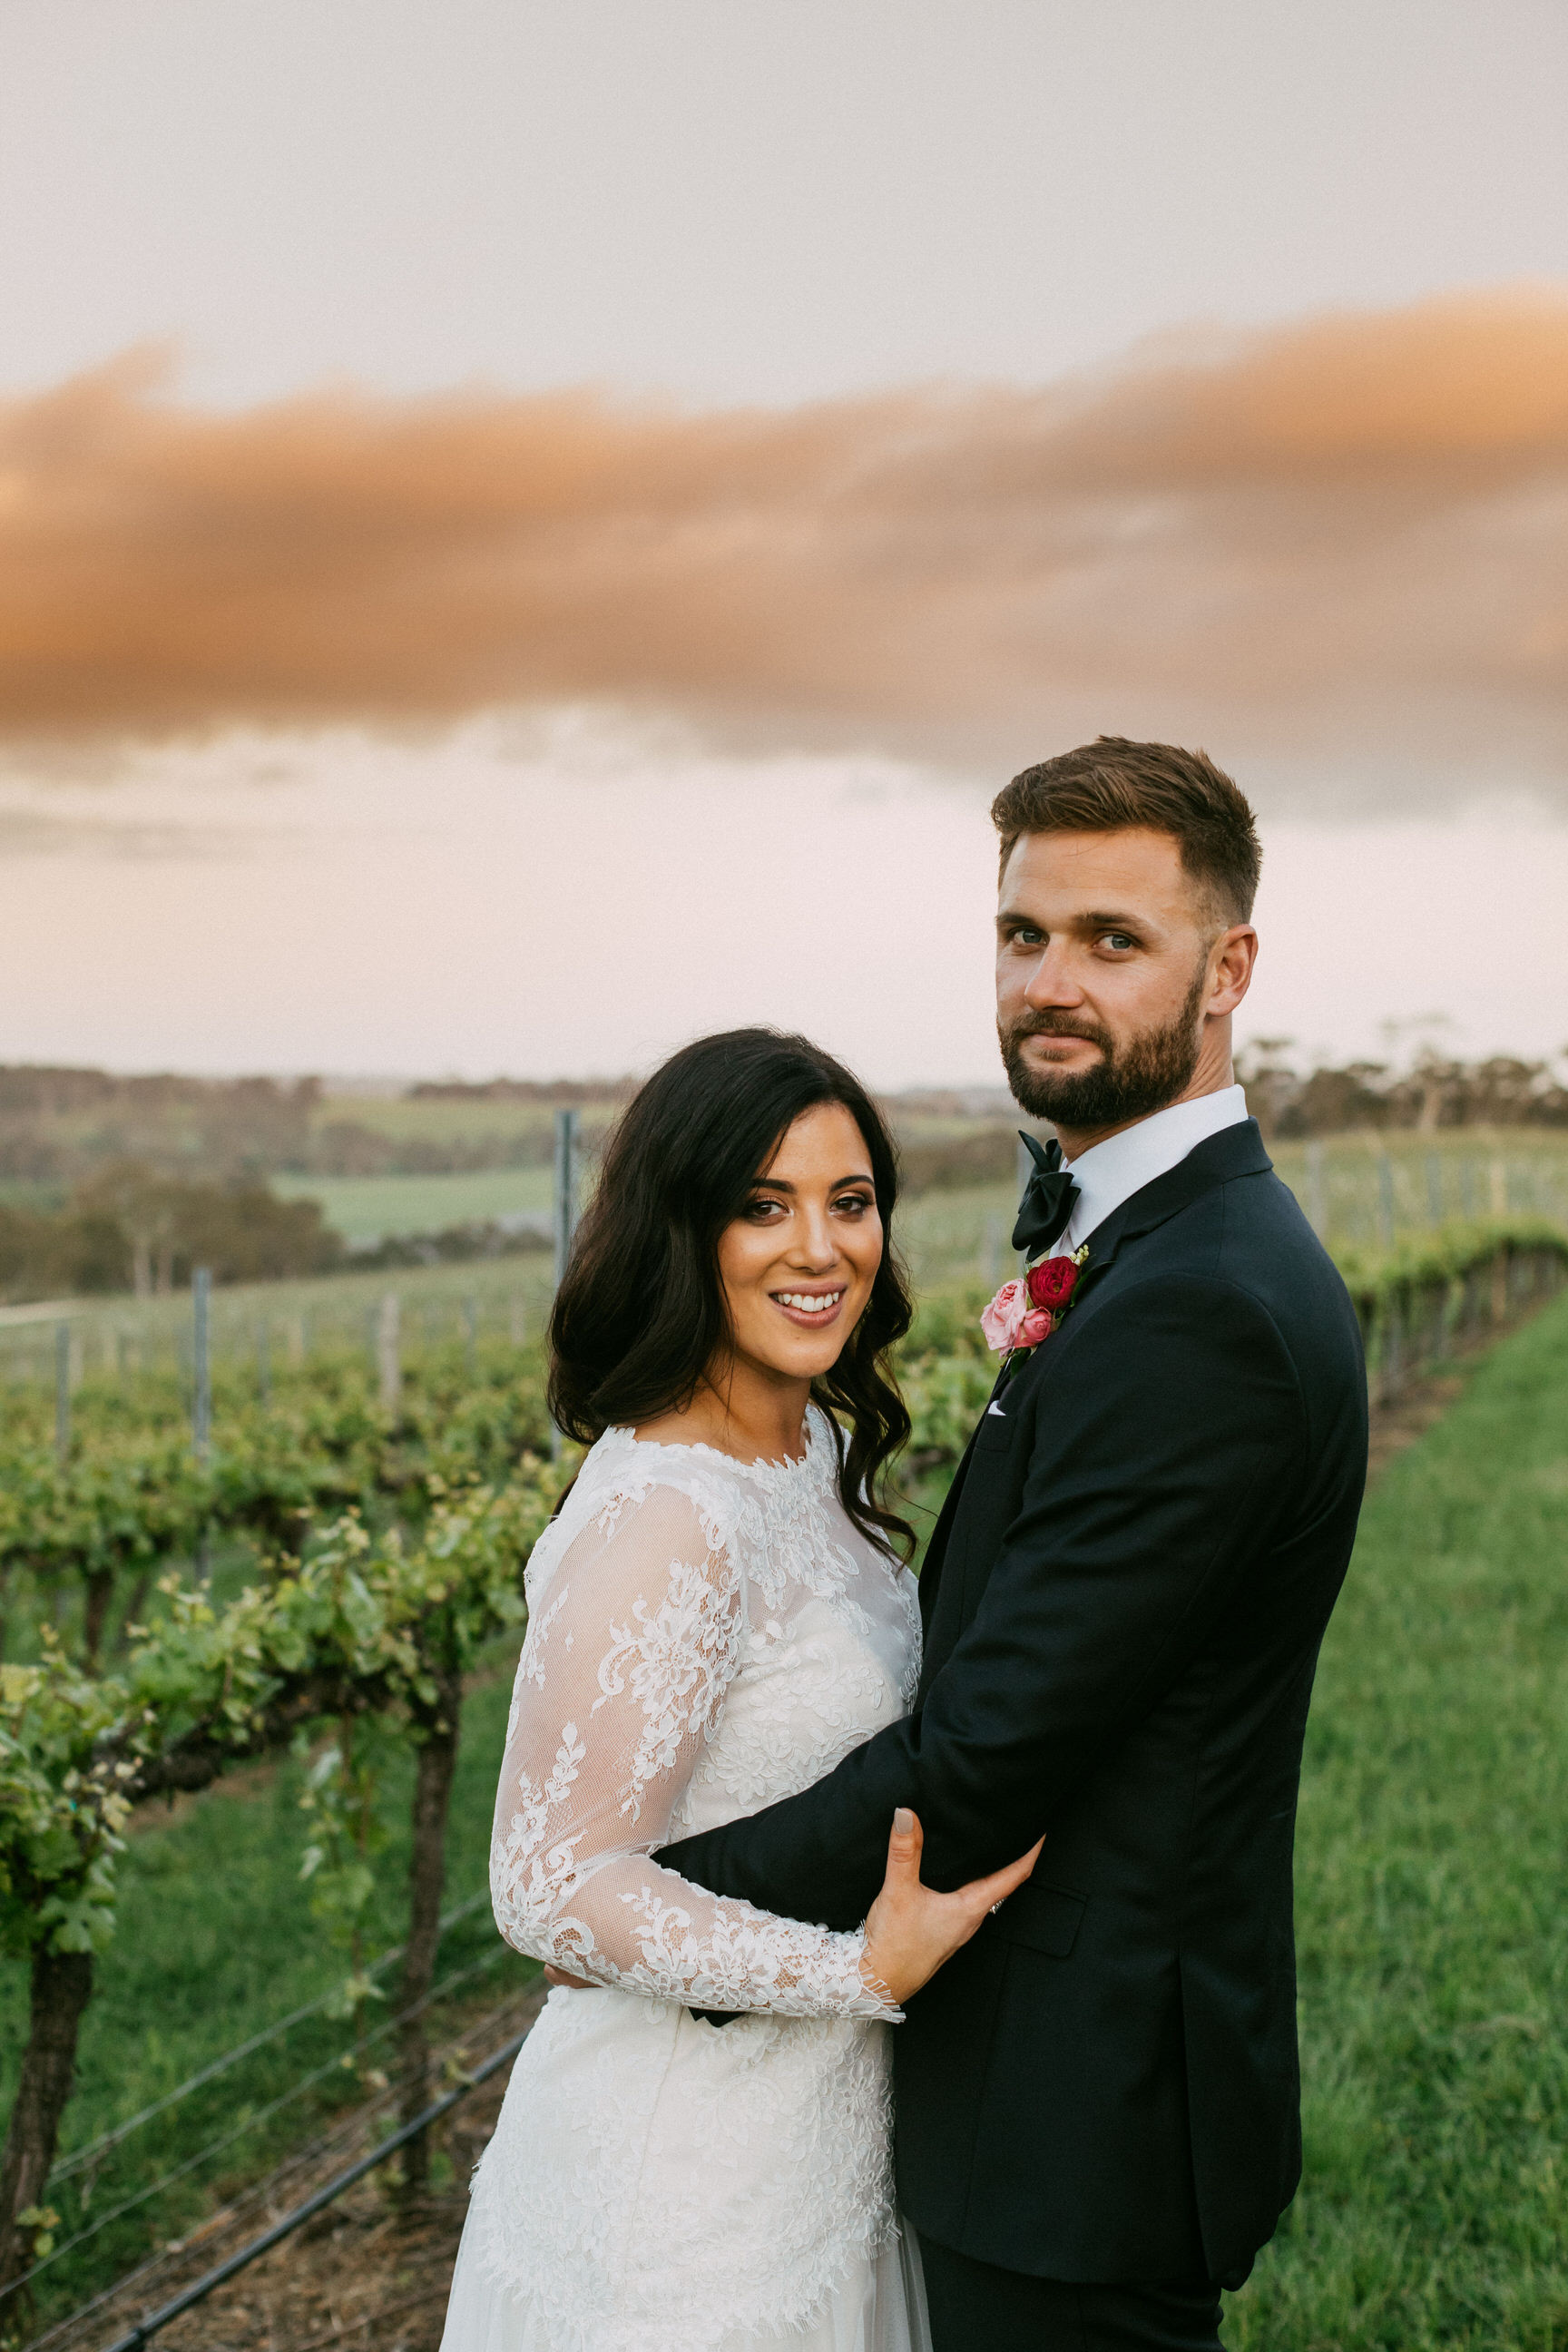 Goldings Winery Wedding SA 173.jpg